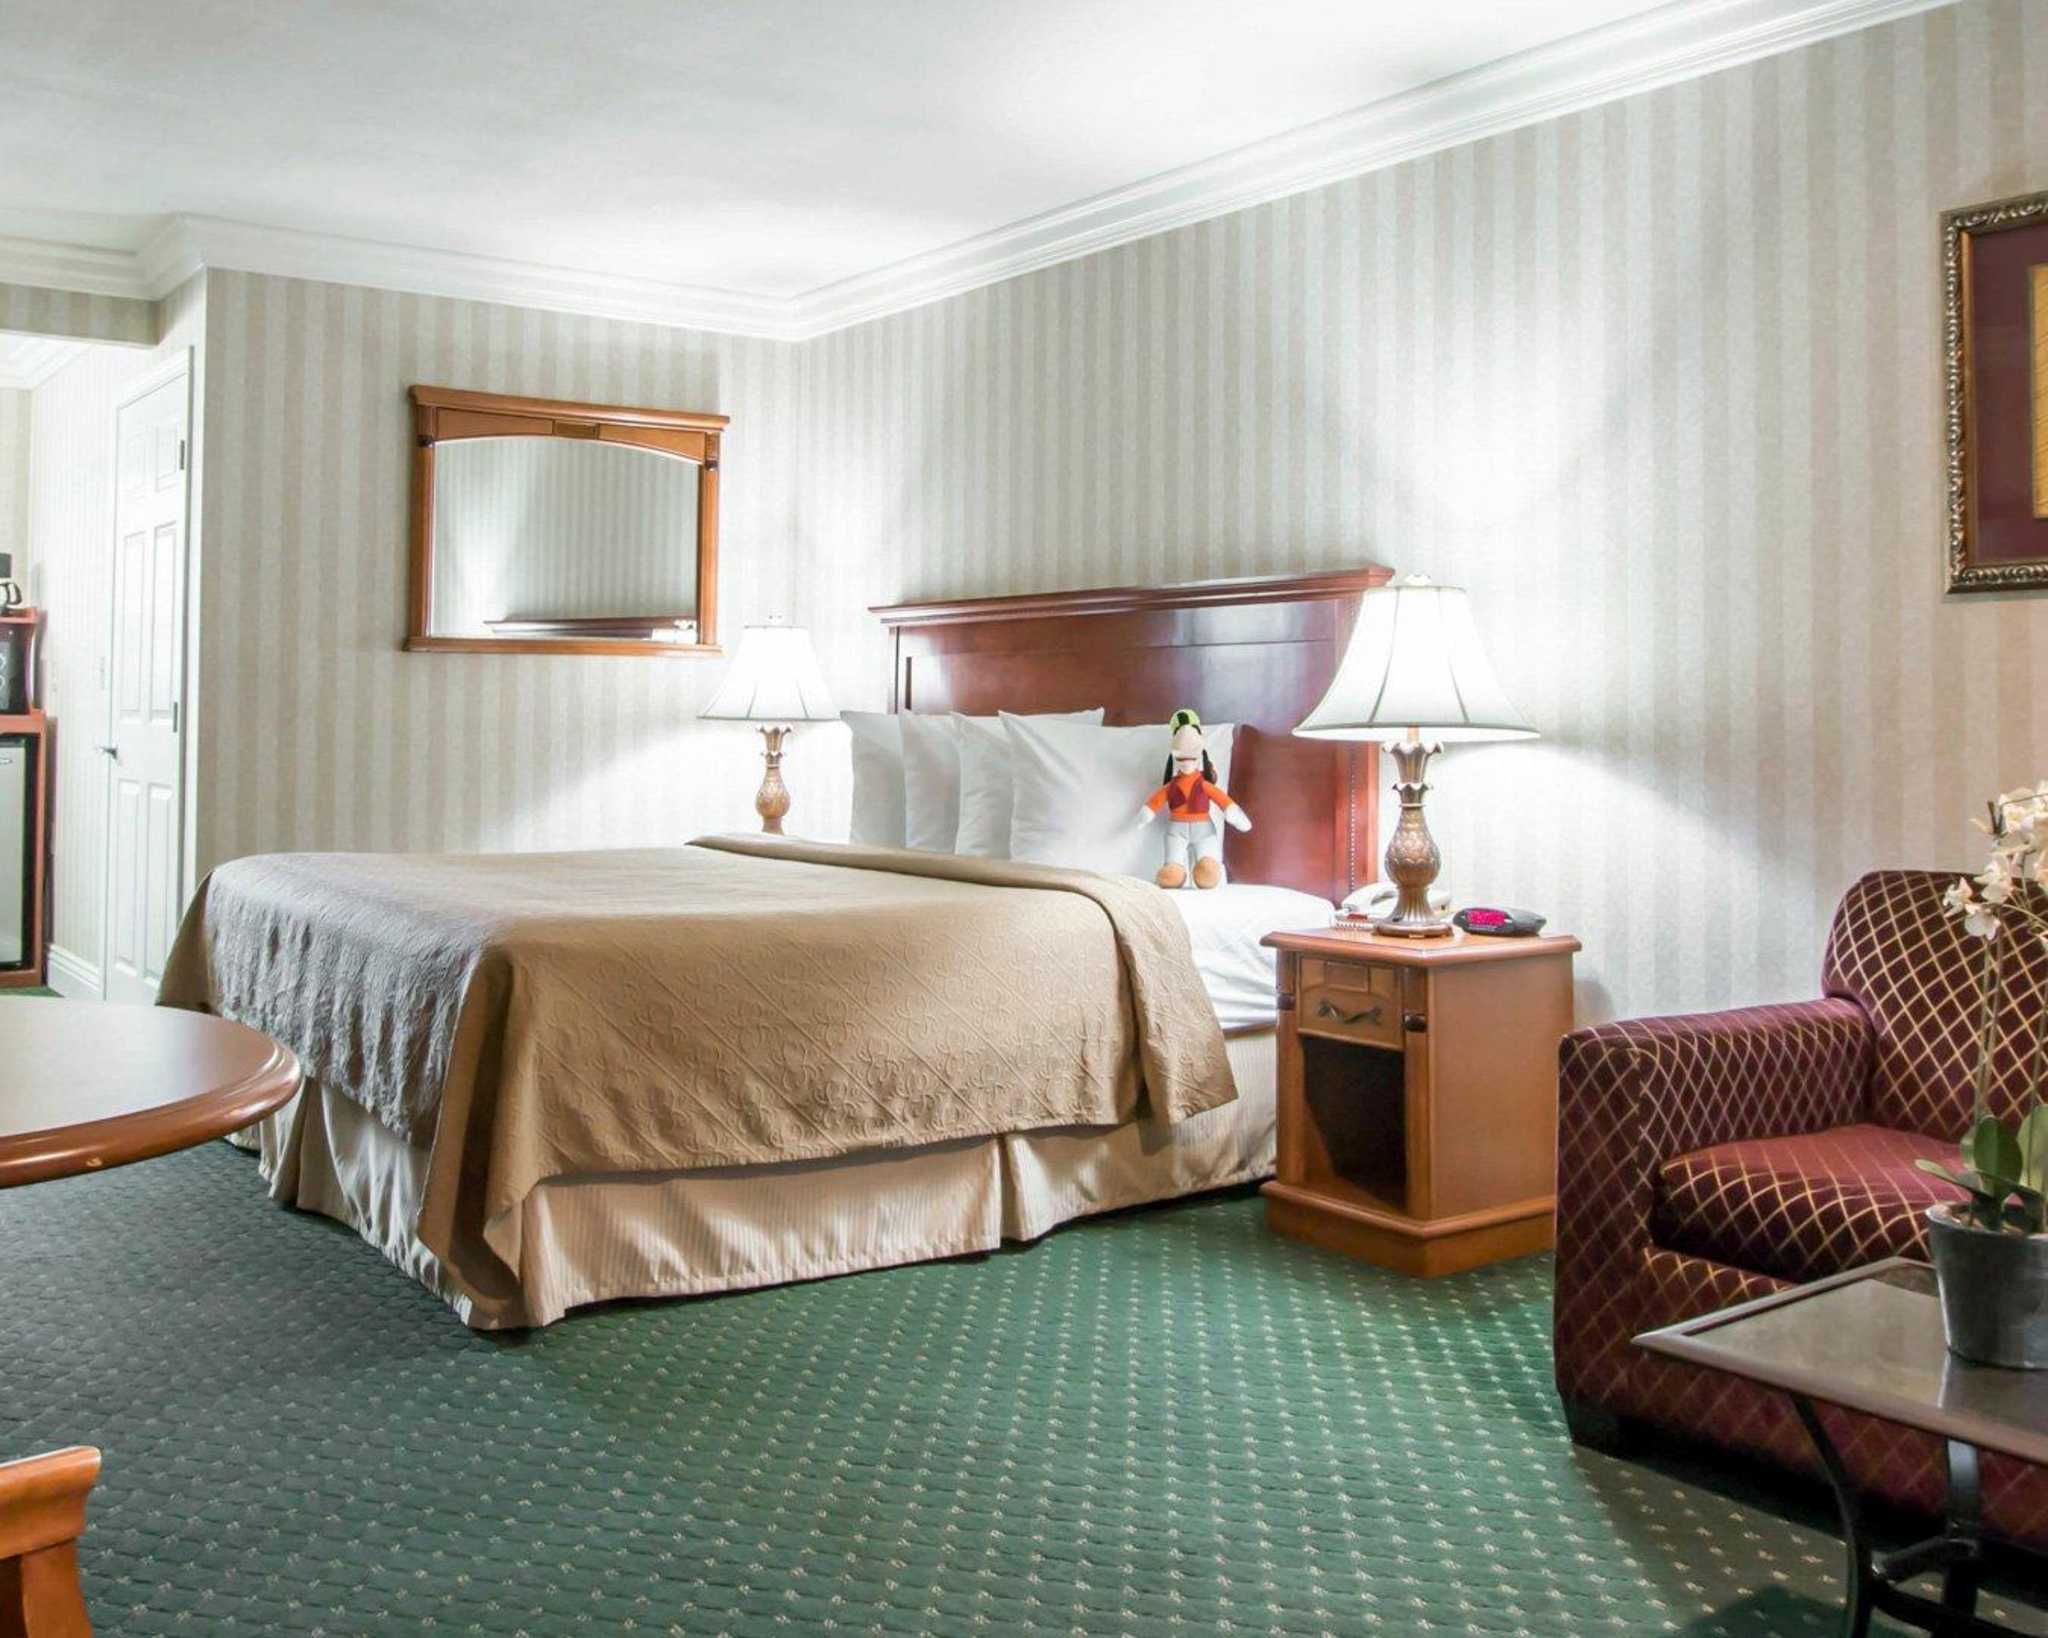 The Quality Inn & Suites ® Anaheim Resort hotel in Anaheim lets you relax and focus on the people and experiences you came for. We're walking distance to Disneyland Park, Disney California Adventure Park and Downtown Disney District.